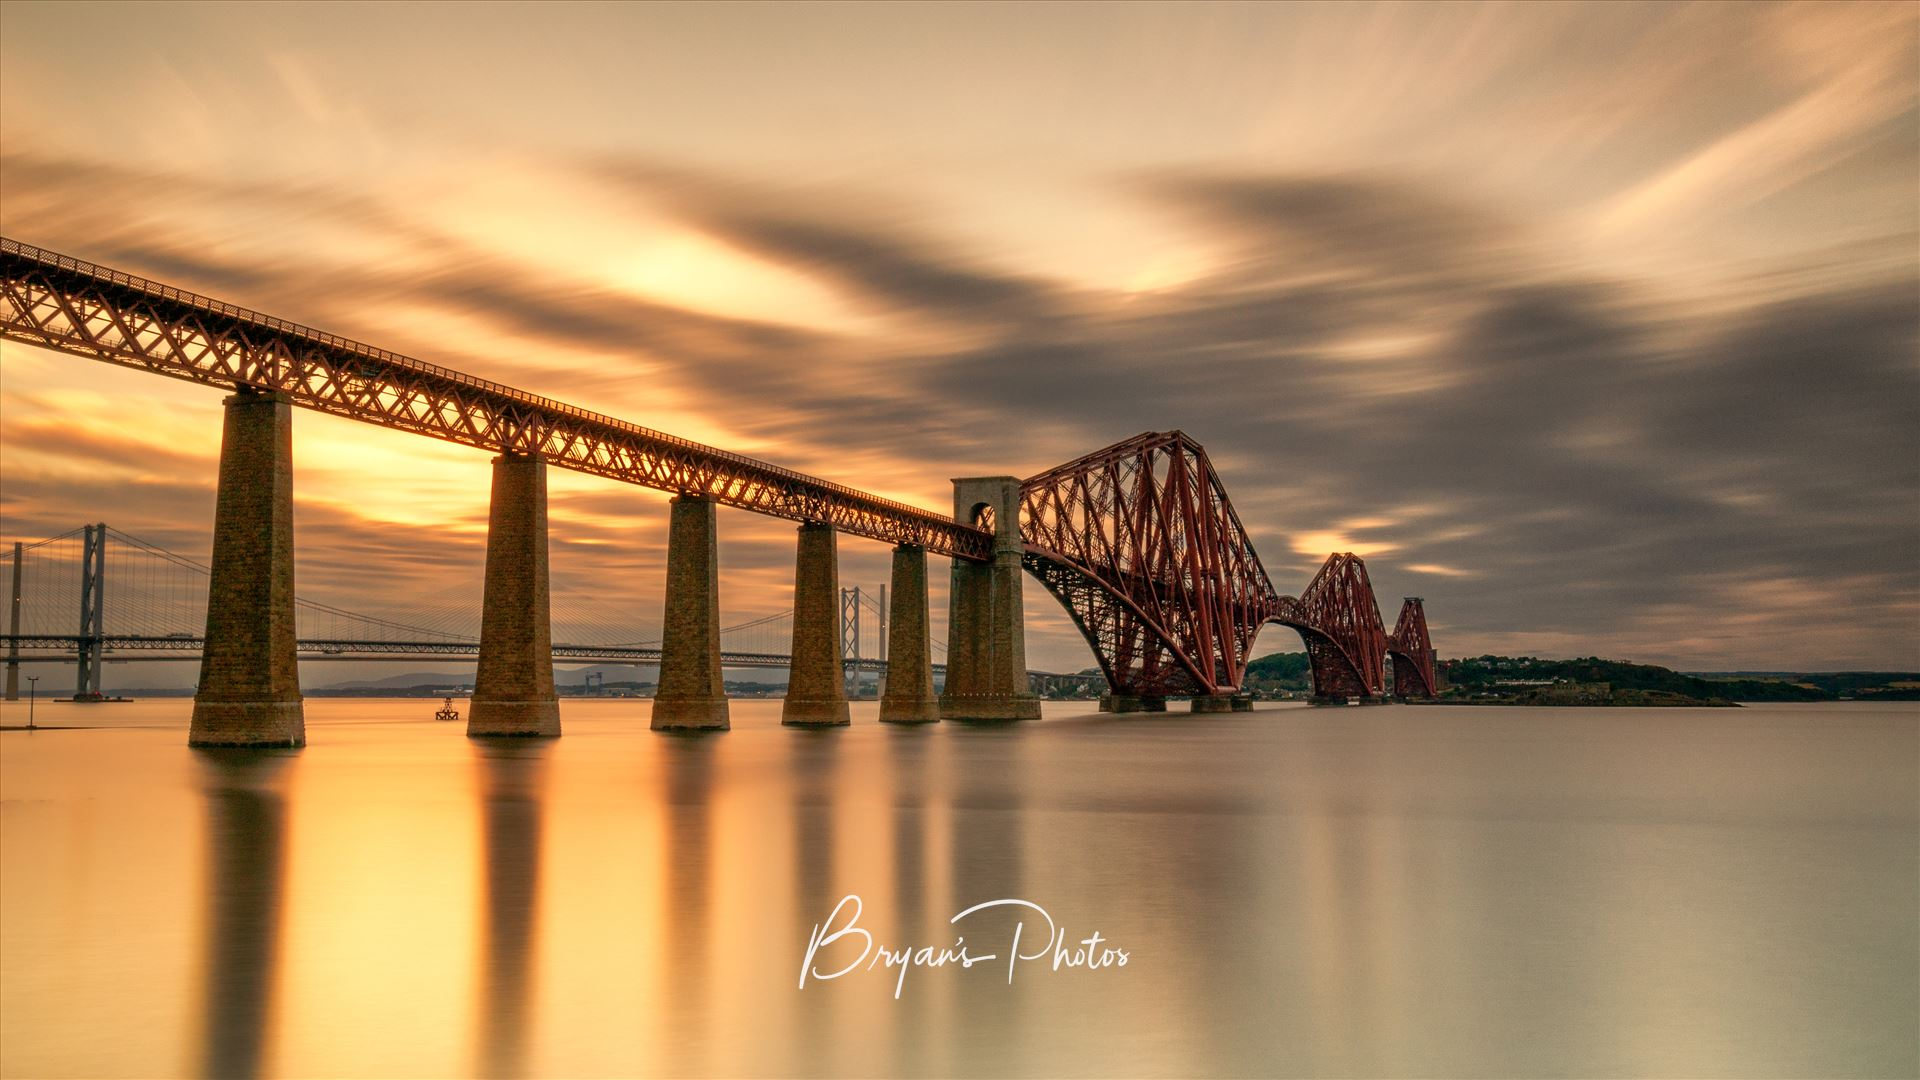 Rail Bridge at Sunset A photograph of the Forth Rail Bridge taken at sunset from South Queensferry. by Bryans Photos